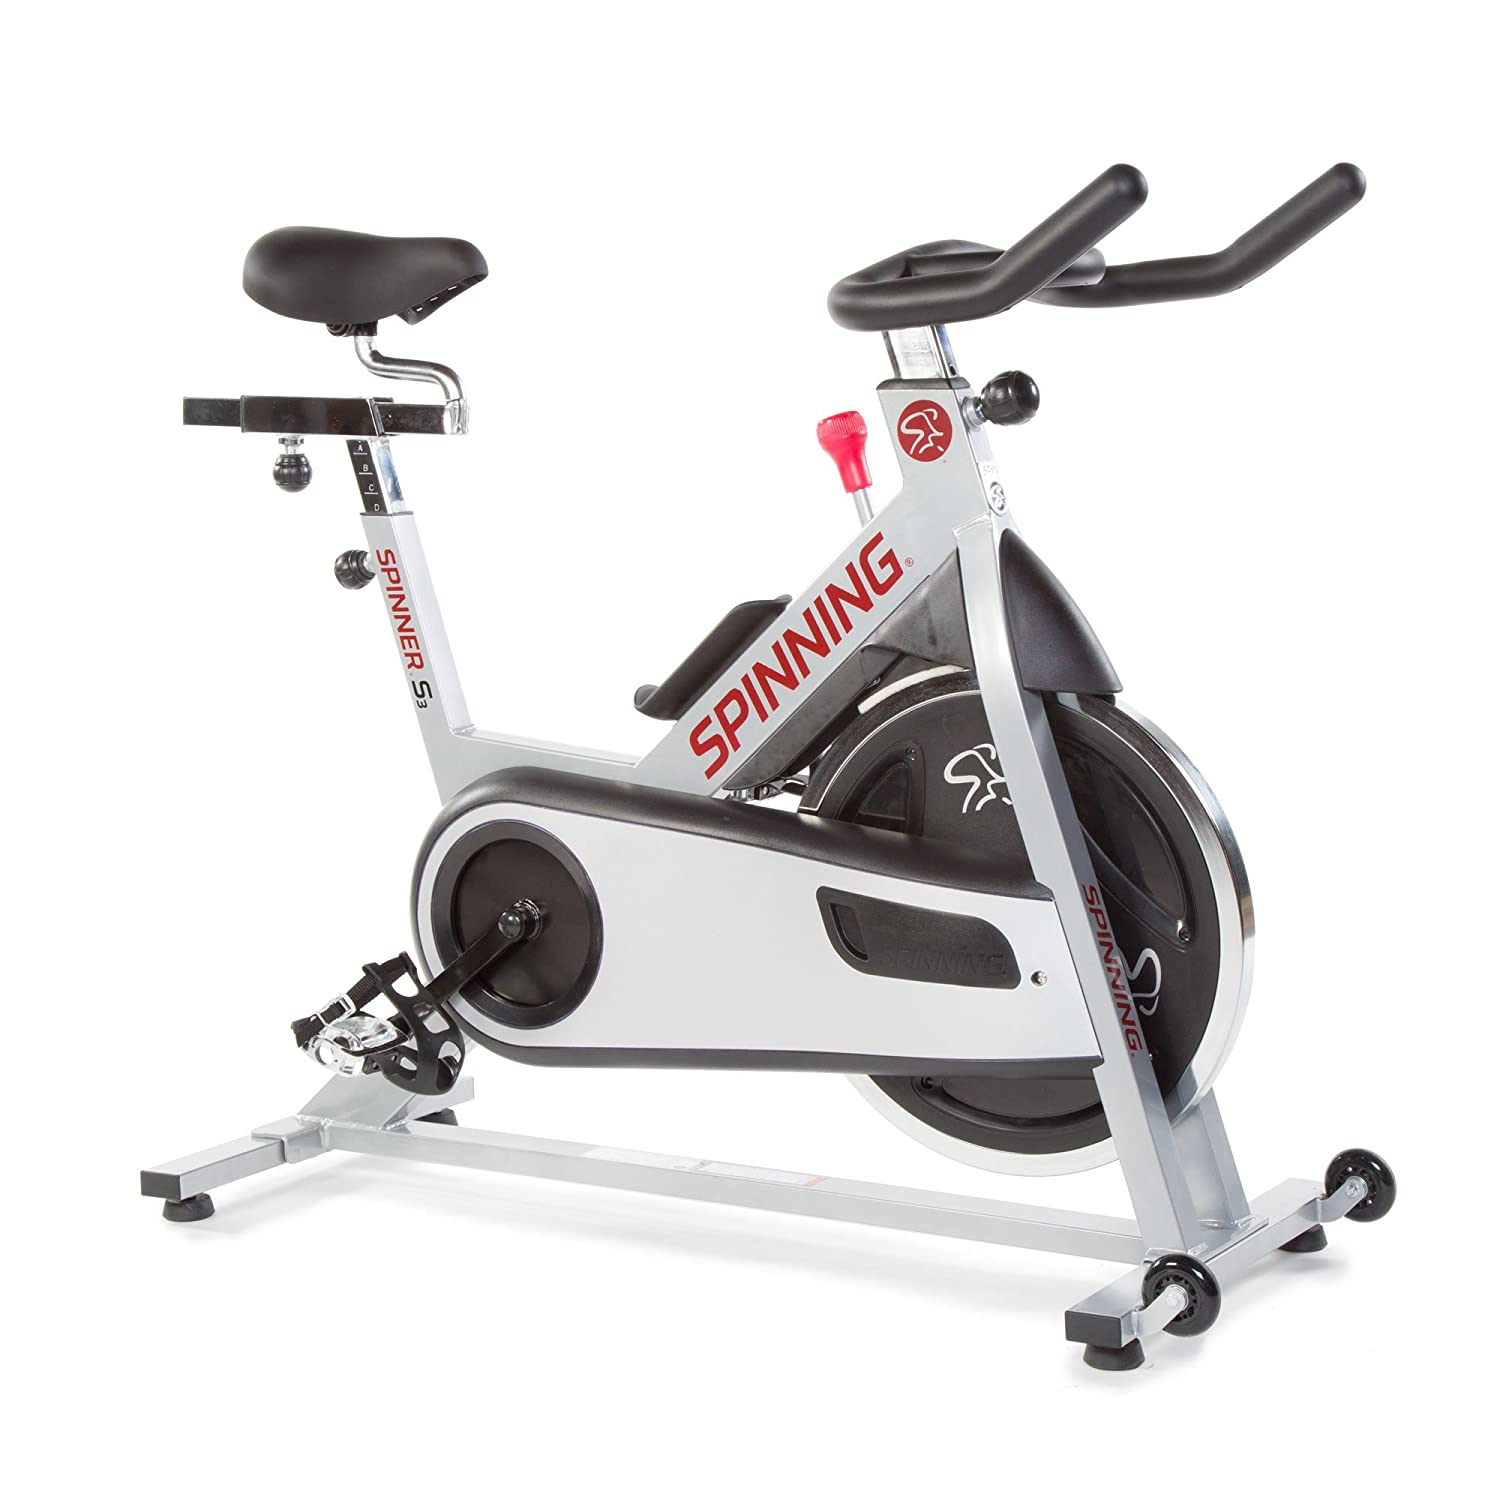 Spinner S3 Indoor Cycling Bike with Four Spinning DVDs, Silver